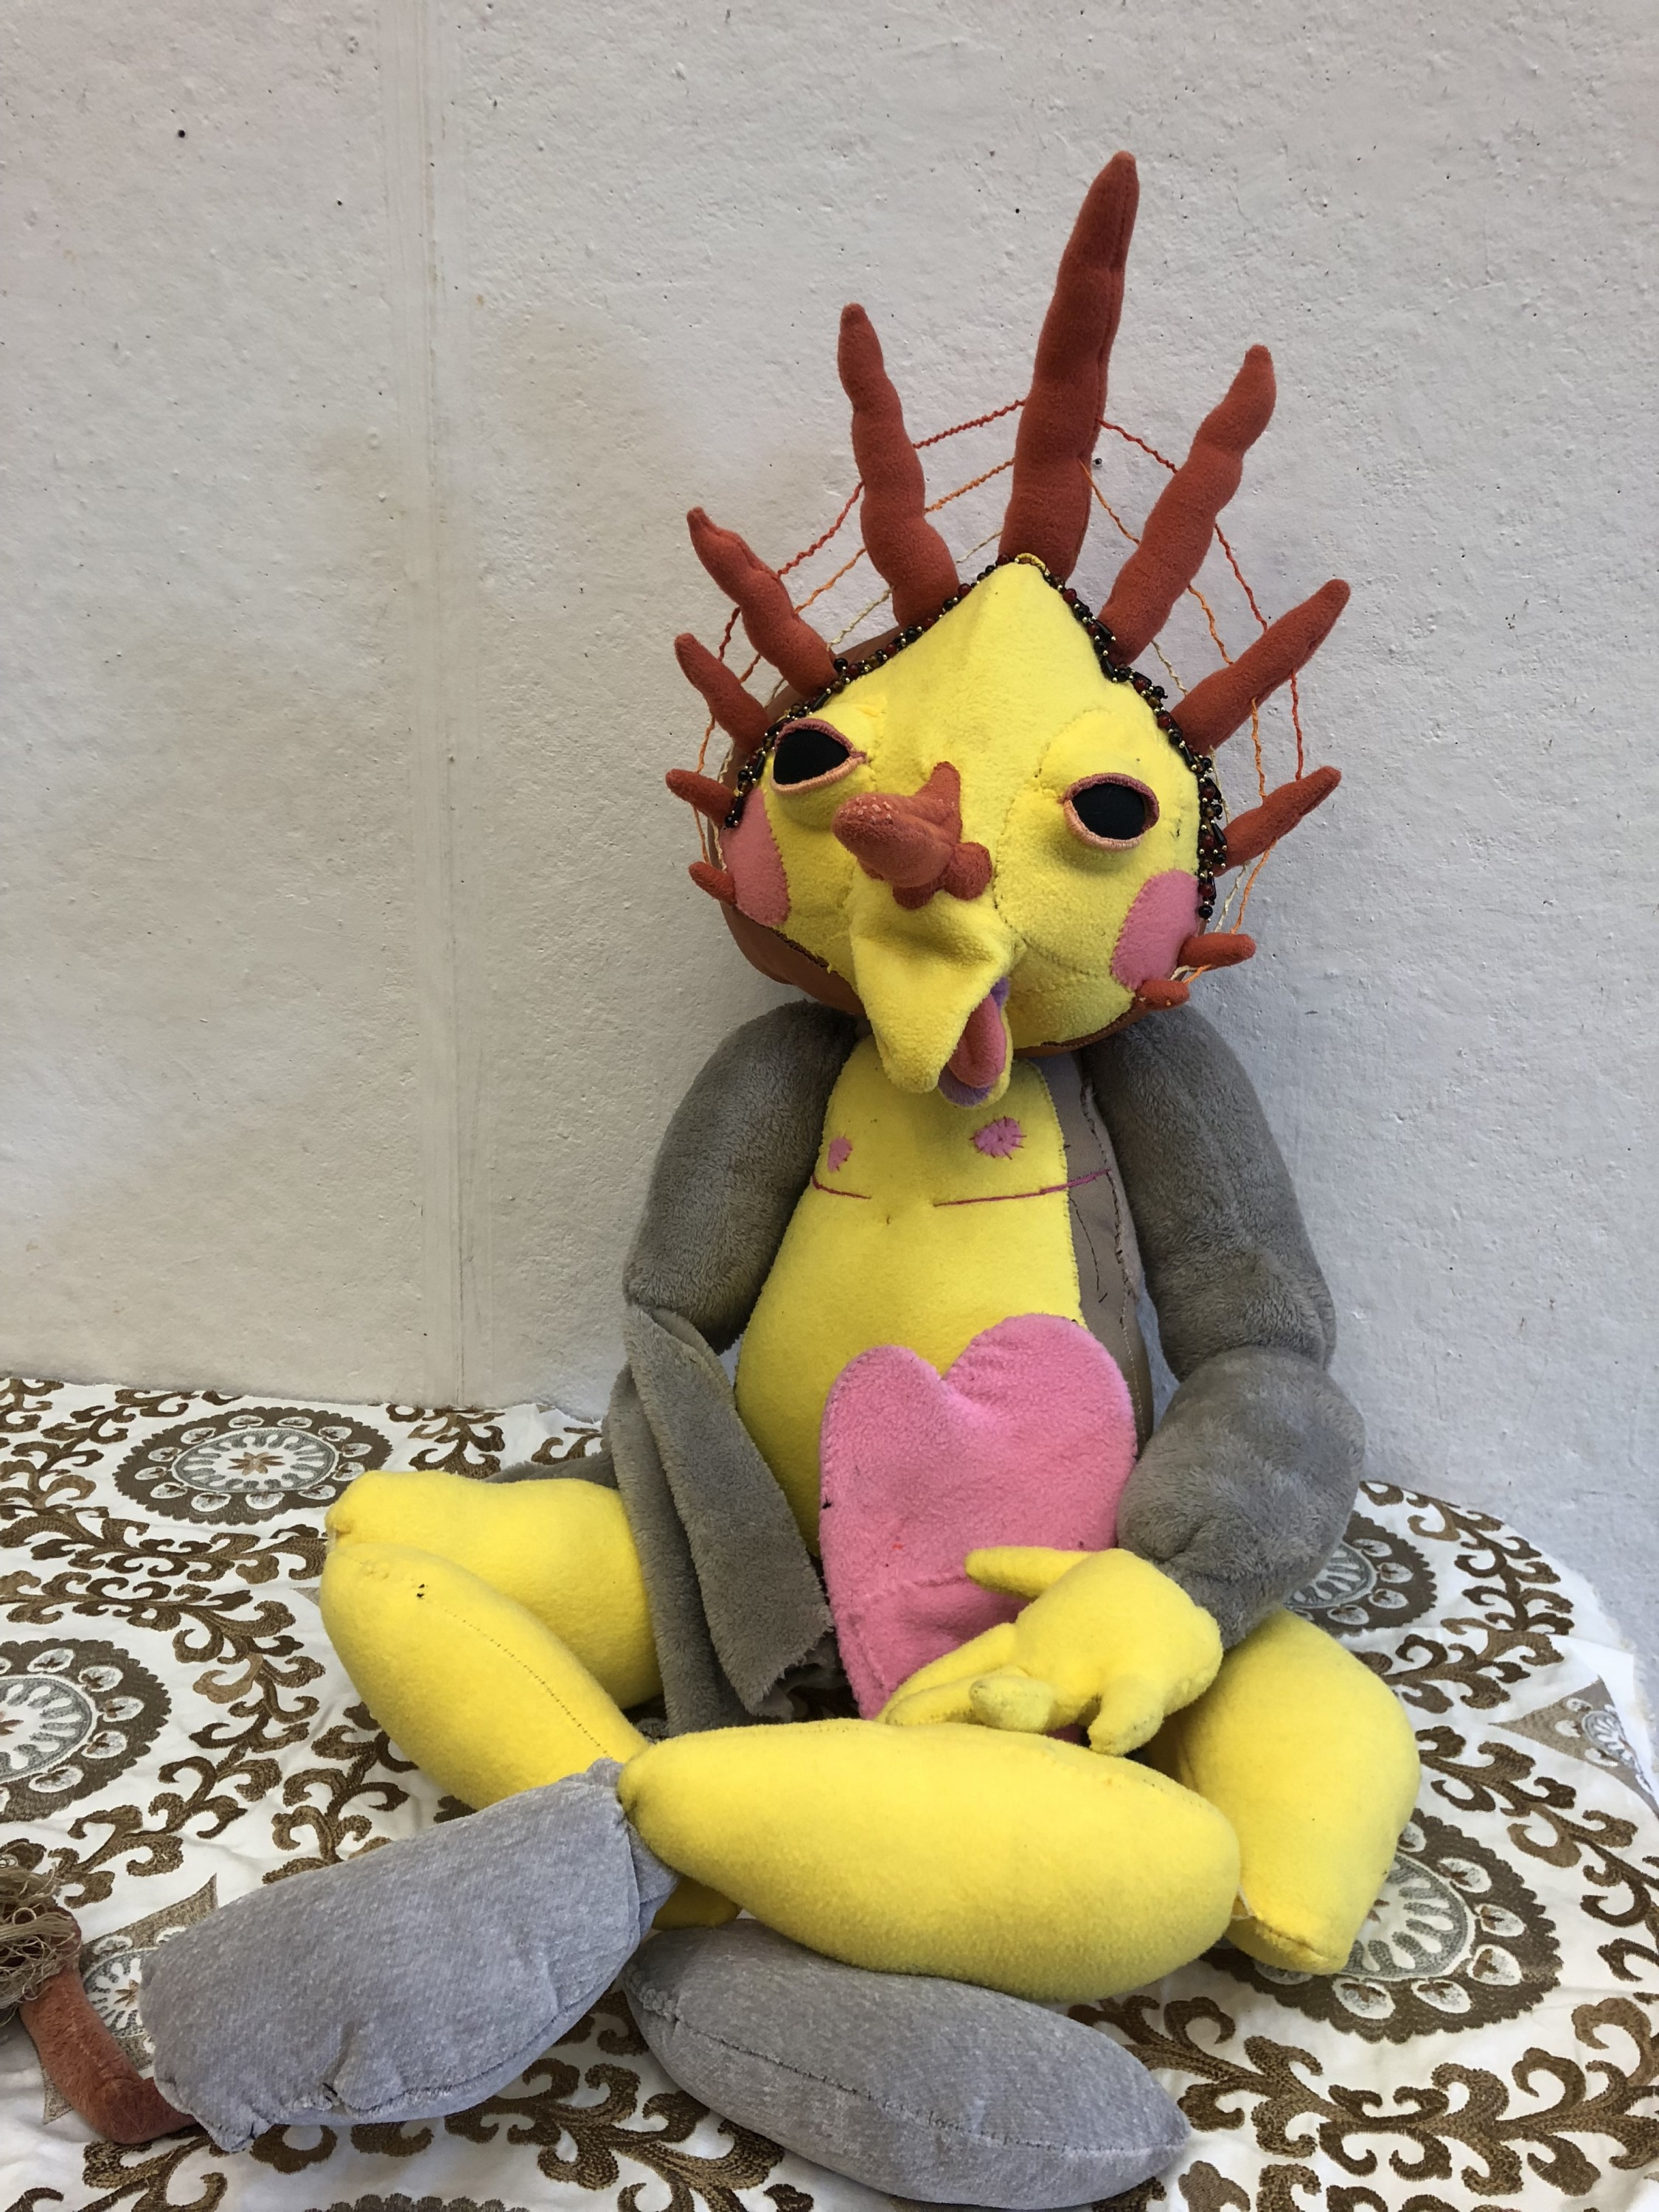 A sun being puppet sits cross legged. His bright colors, embellishments, and prominent top surgery scars are meant to represent the immense self love I have found in accepting my identity as a trans person.